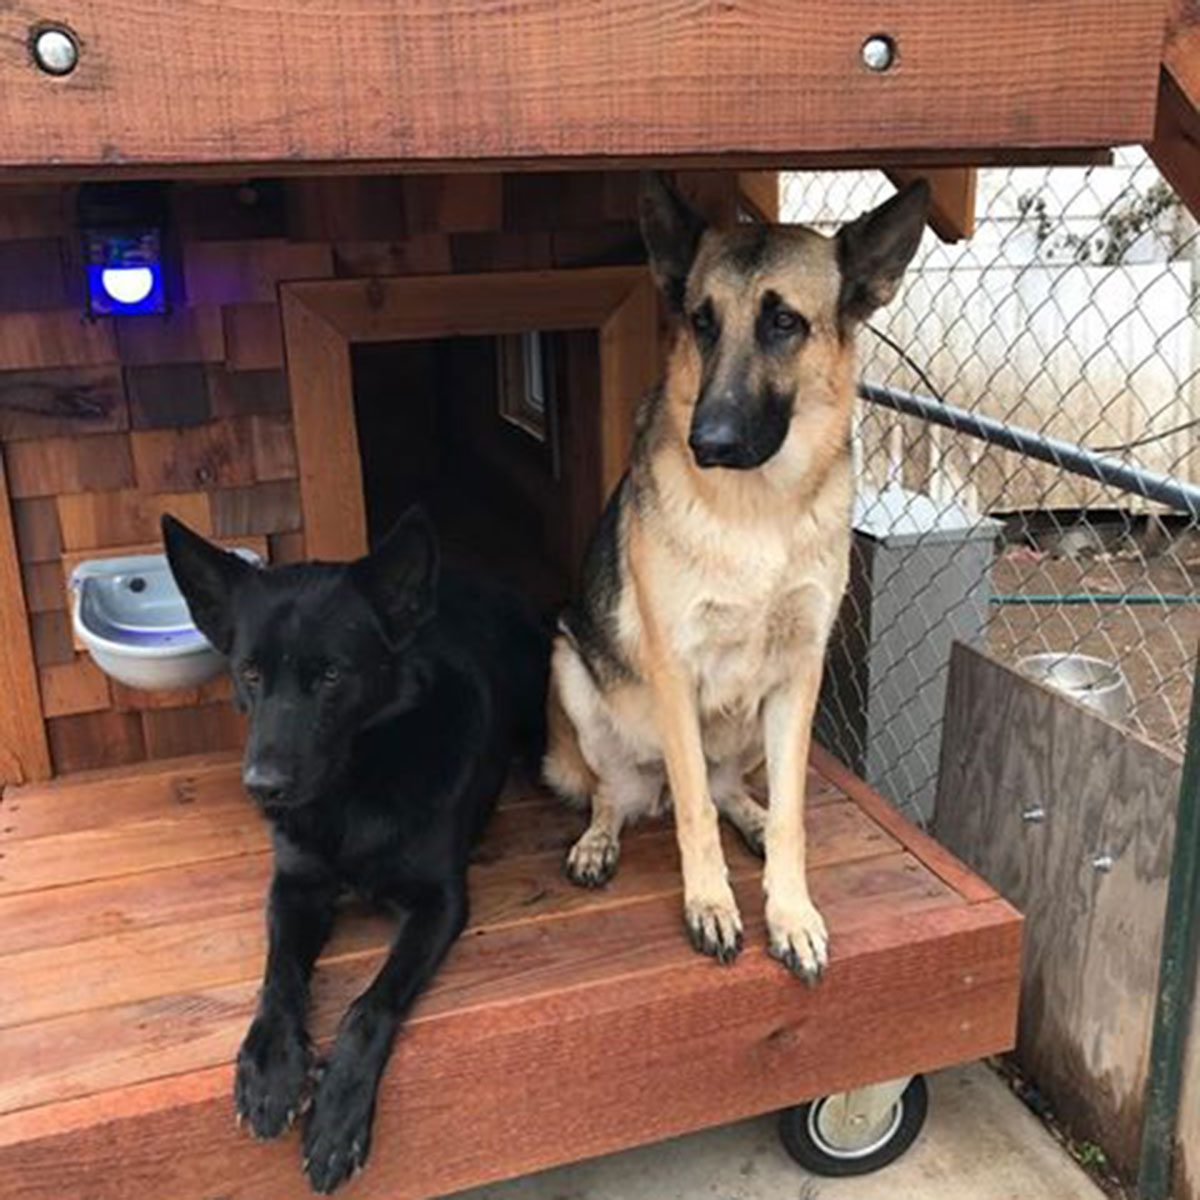 dogs enjoying dog house